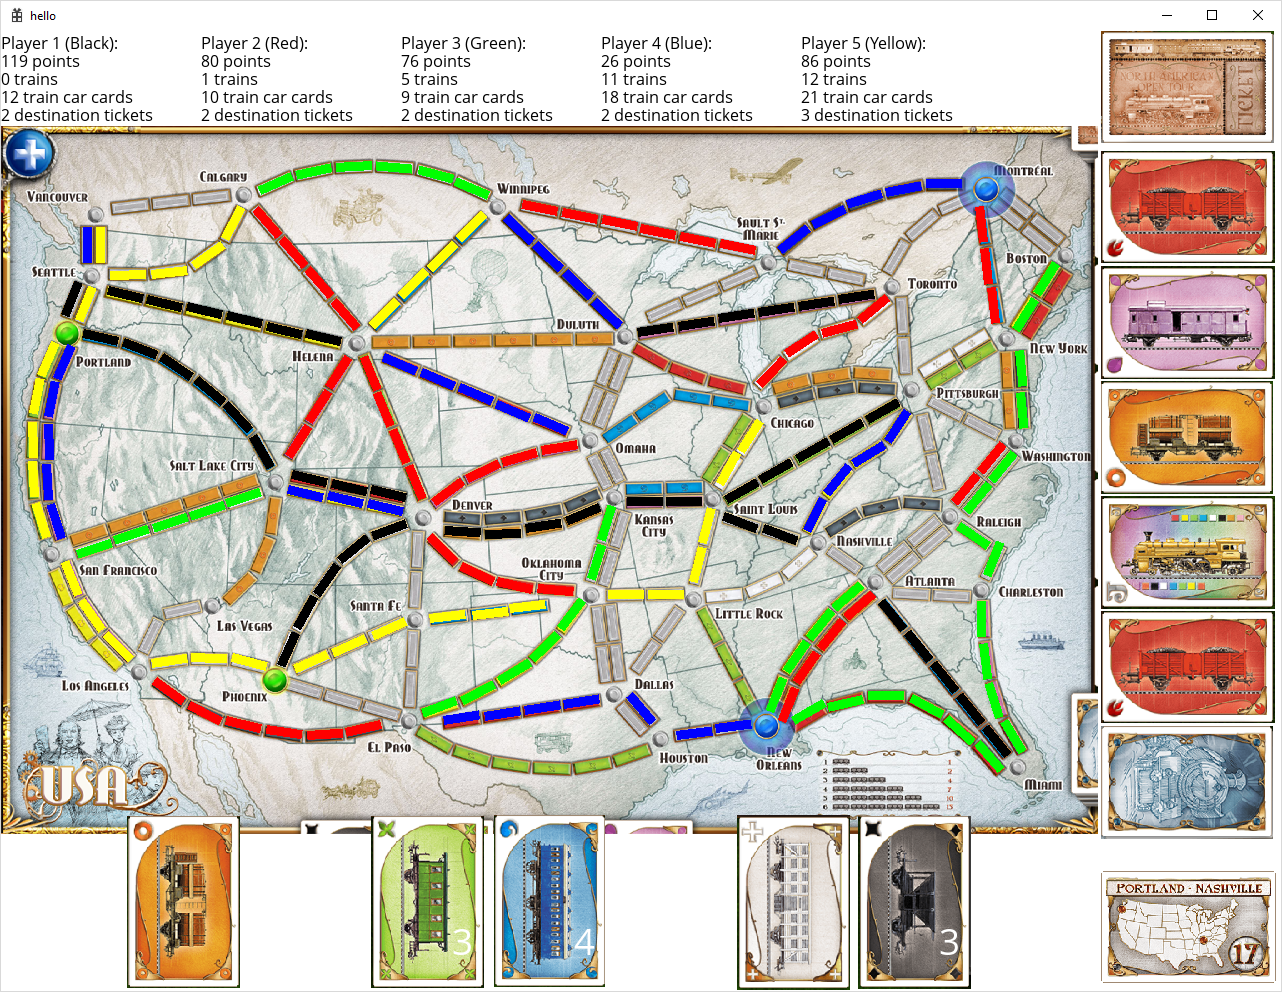 In this game, notice the Portland/Nashville destination ticket in the lower-right corner of the window. This indicates that player 1, who is placing black trains, is trying to connect the two cities, and lo and behold, it did precisely that! My output log also shows that it has a destination ticket for Denver and Pittsburgh, which it also successfully connected. On top of that, it made a point of claiming valuable 5- and 6-space routes to buff its score, like the one between Helena and Seattle, the one between Toronto and Duluth, and the one between Miami and Atlanta.  Notice, as well, that this competition can become cutthroat very quickly. Poor player 4 finished the game with a paltry 26 points. The output log shows us why: they were tasked with connecting Vancouver and Santa Fe, but they got crowded out of Vancouver by other players; Seattle was taken over by Yellow and Black, while Calgary was taken over by Yellow, Red, and Green. Blue's other destination ticket went from Miami to Los Angeles, and Blue was similarly crowded out of Miami. The railroad business is rough!